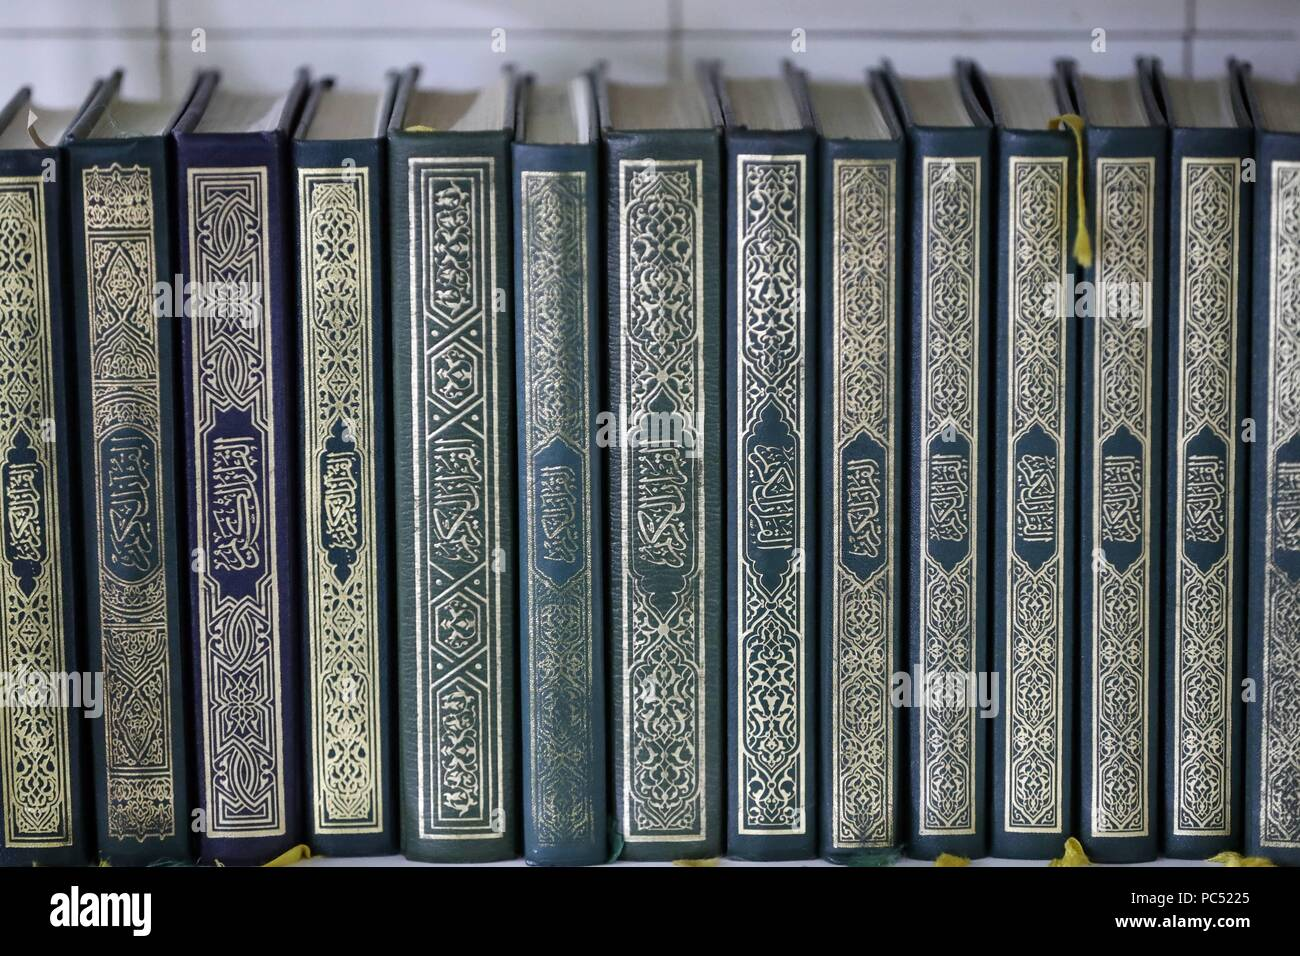 Holy Quran books  | usage worldwide Stock Photo: 214011677